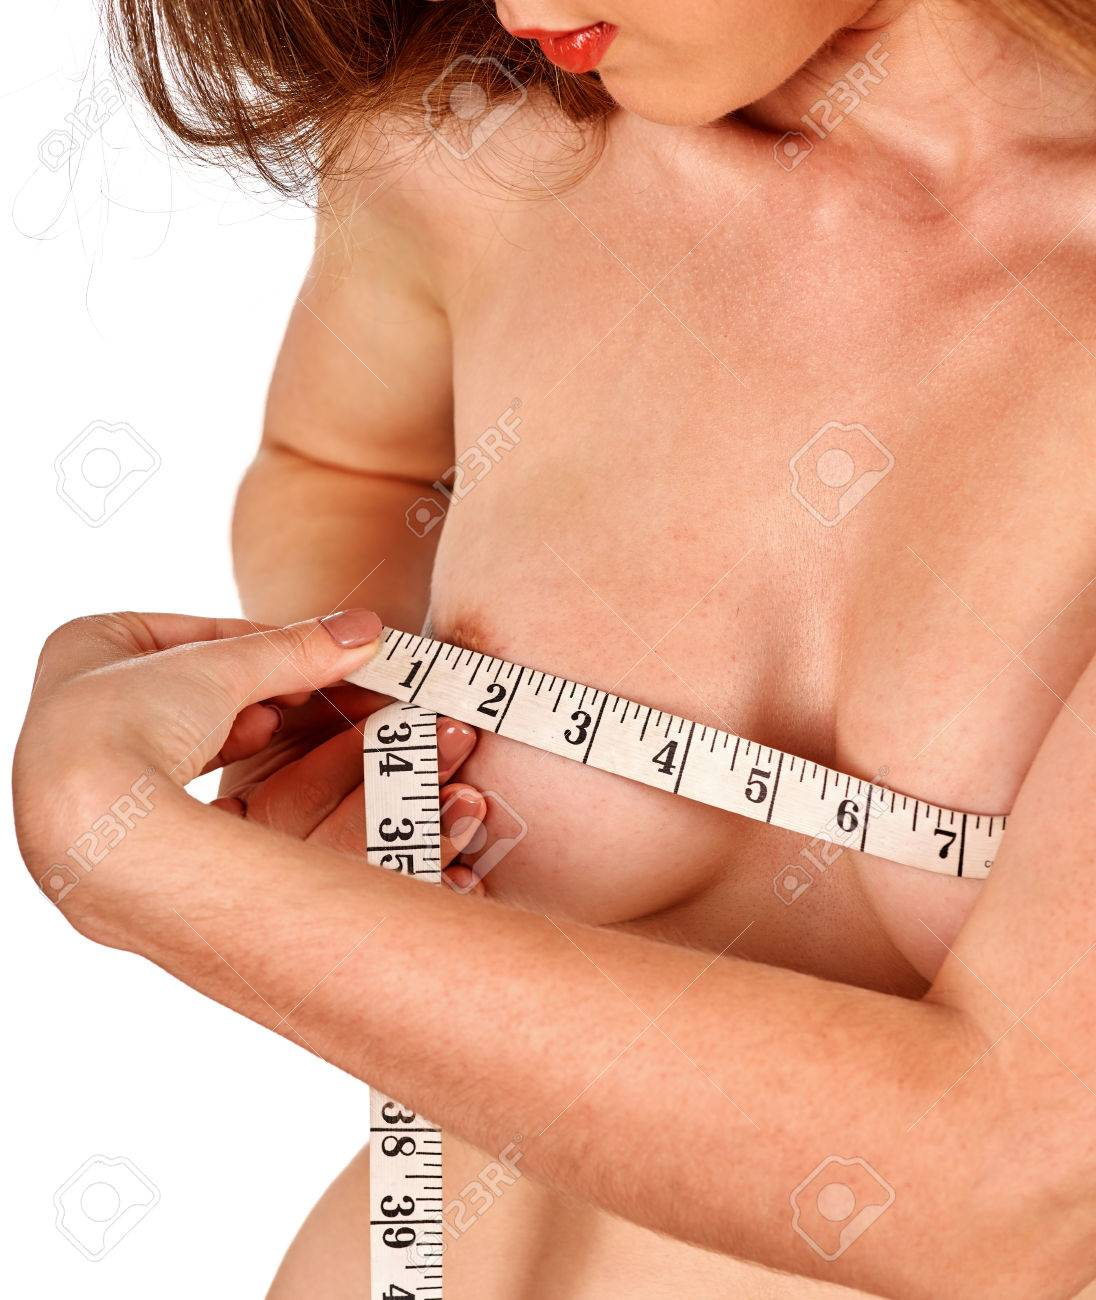 Naked Women Measuring Breasts Sexy